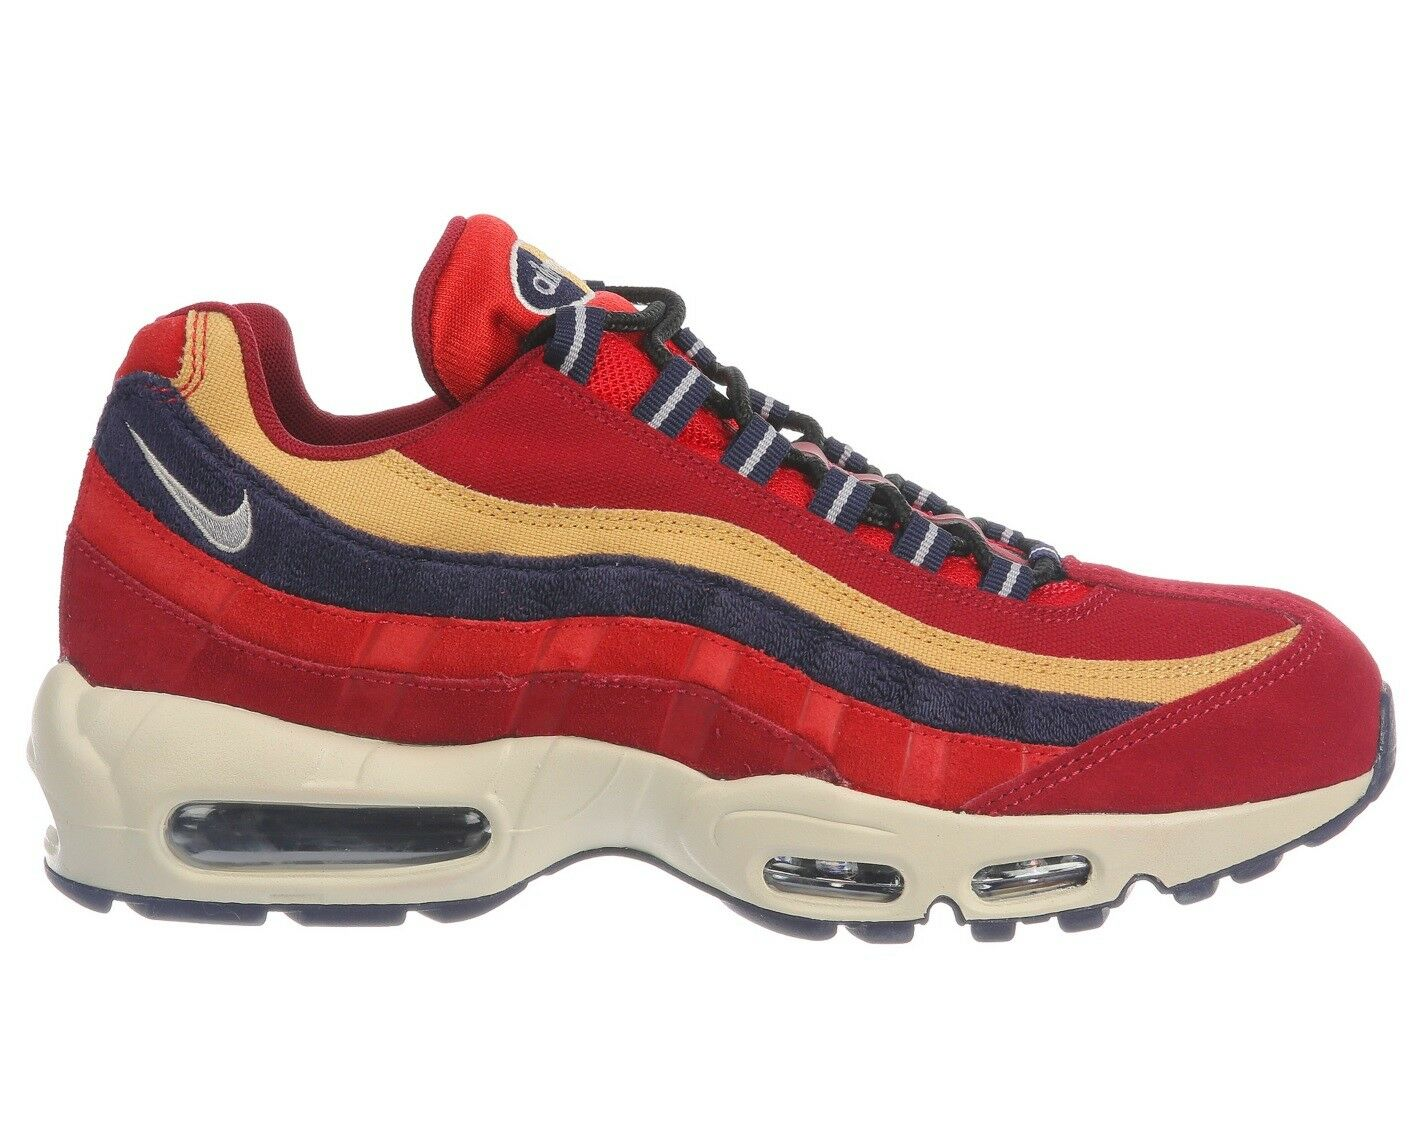 wholesale dealer c6884 1c7b5 Nike Air Max 95 Premium Mens 538416-603 Red Red 538416-603 Purple Wheat  Running Shoes Size 11.5 14cb62